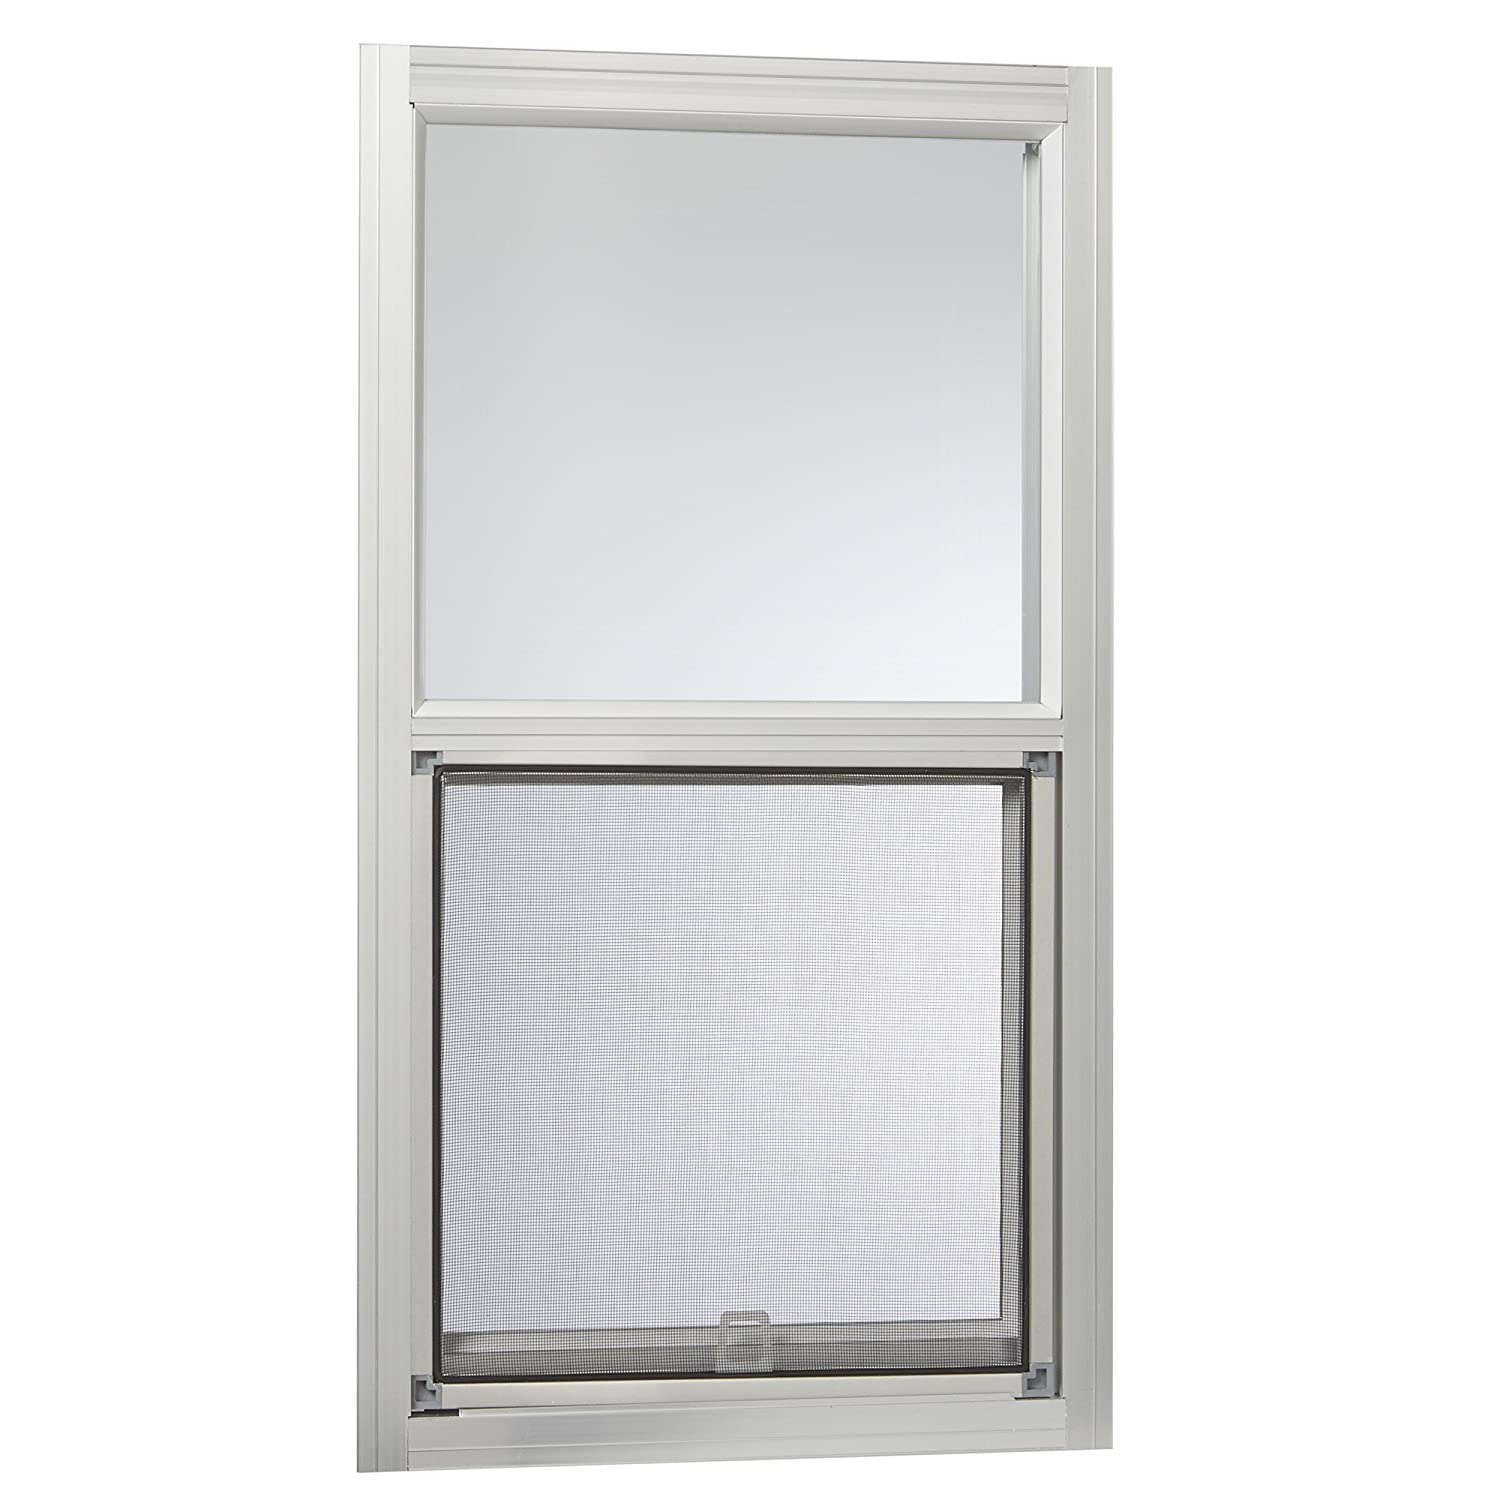 Park Ridge AMHMF1427PR Aluminum Mobile Home Single Hung Window 14 Inch x 27 Inch, Mill Finish Silver